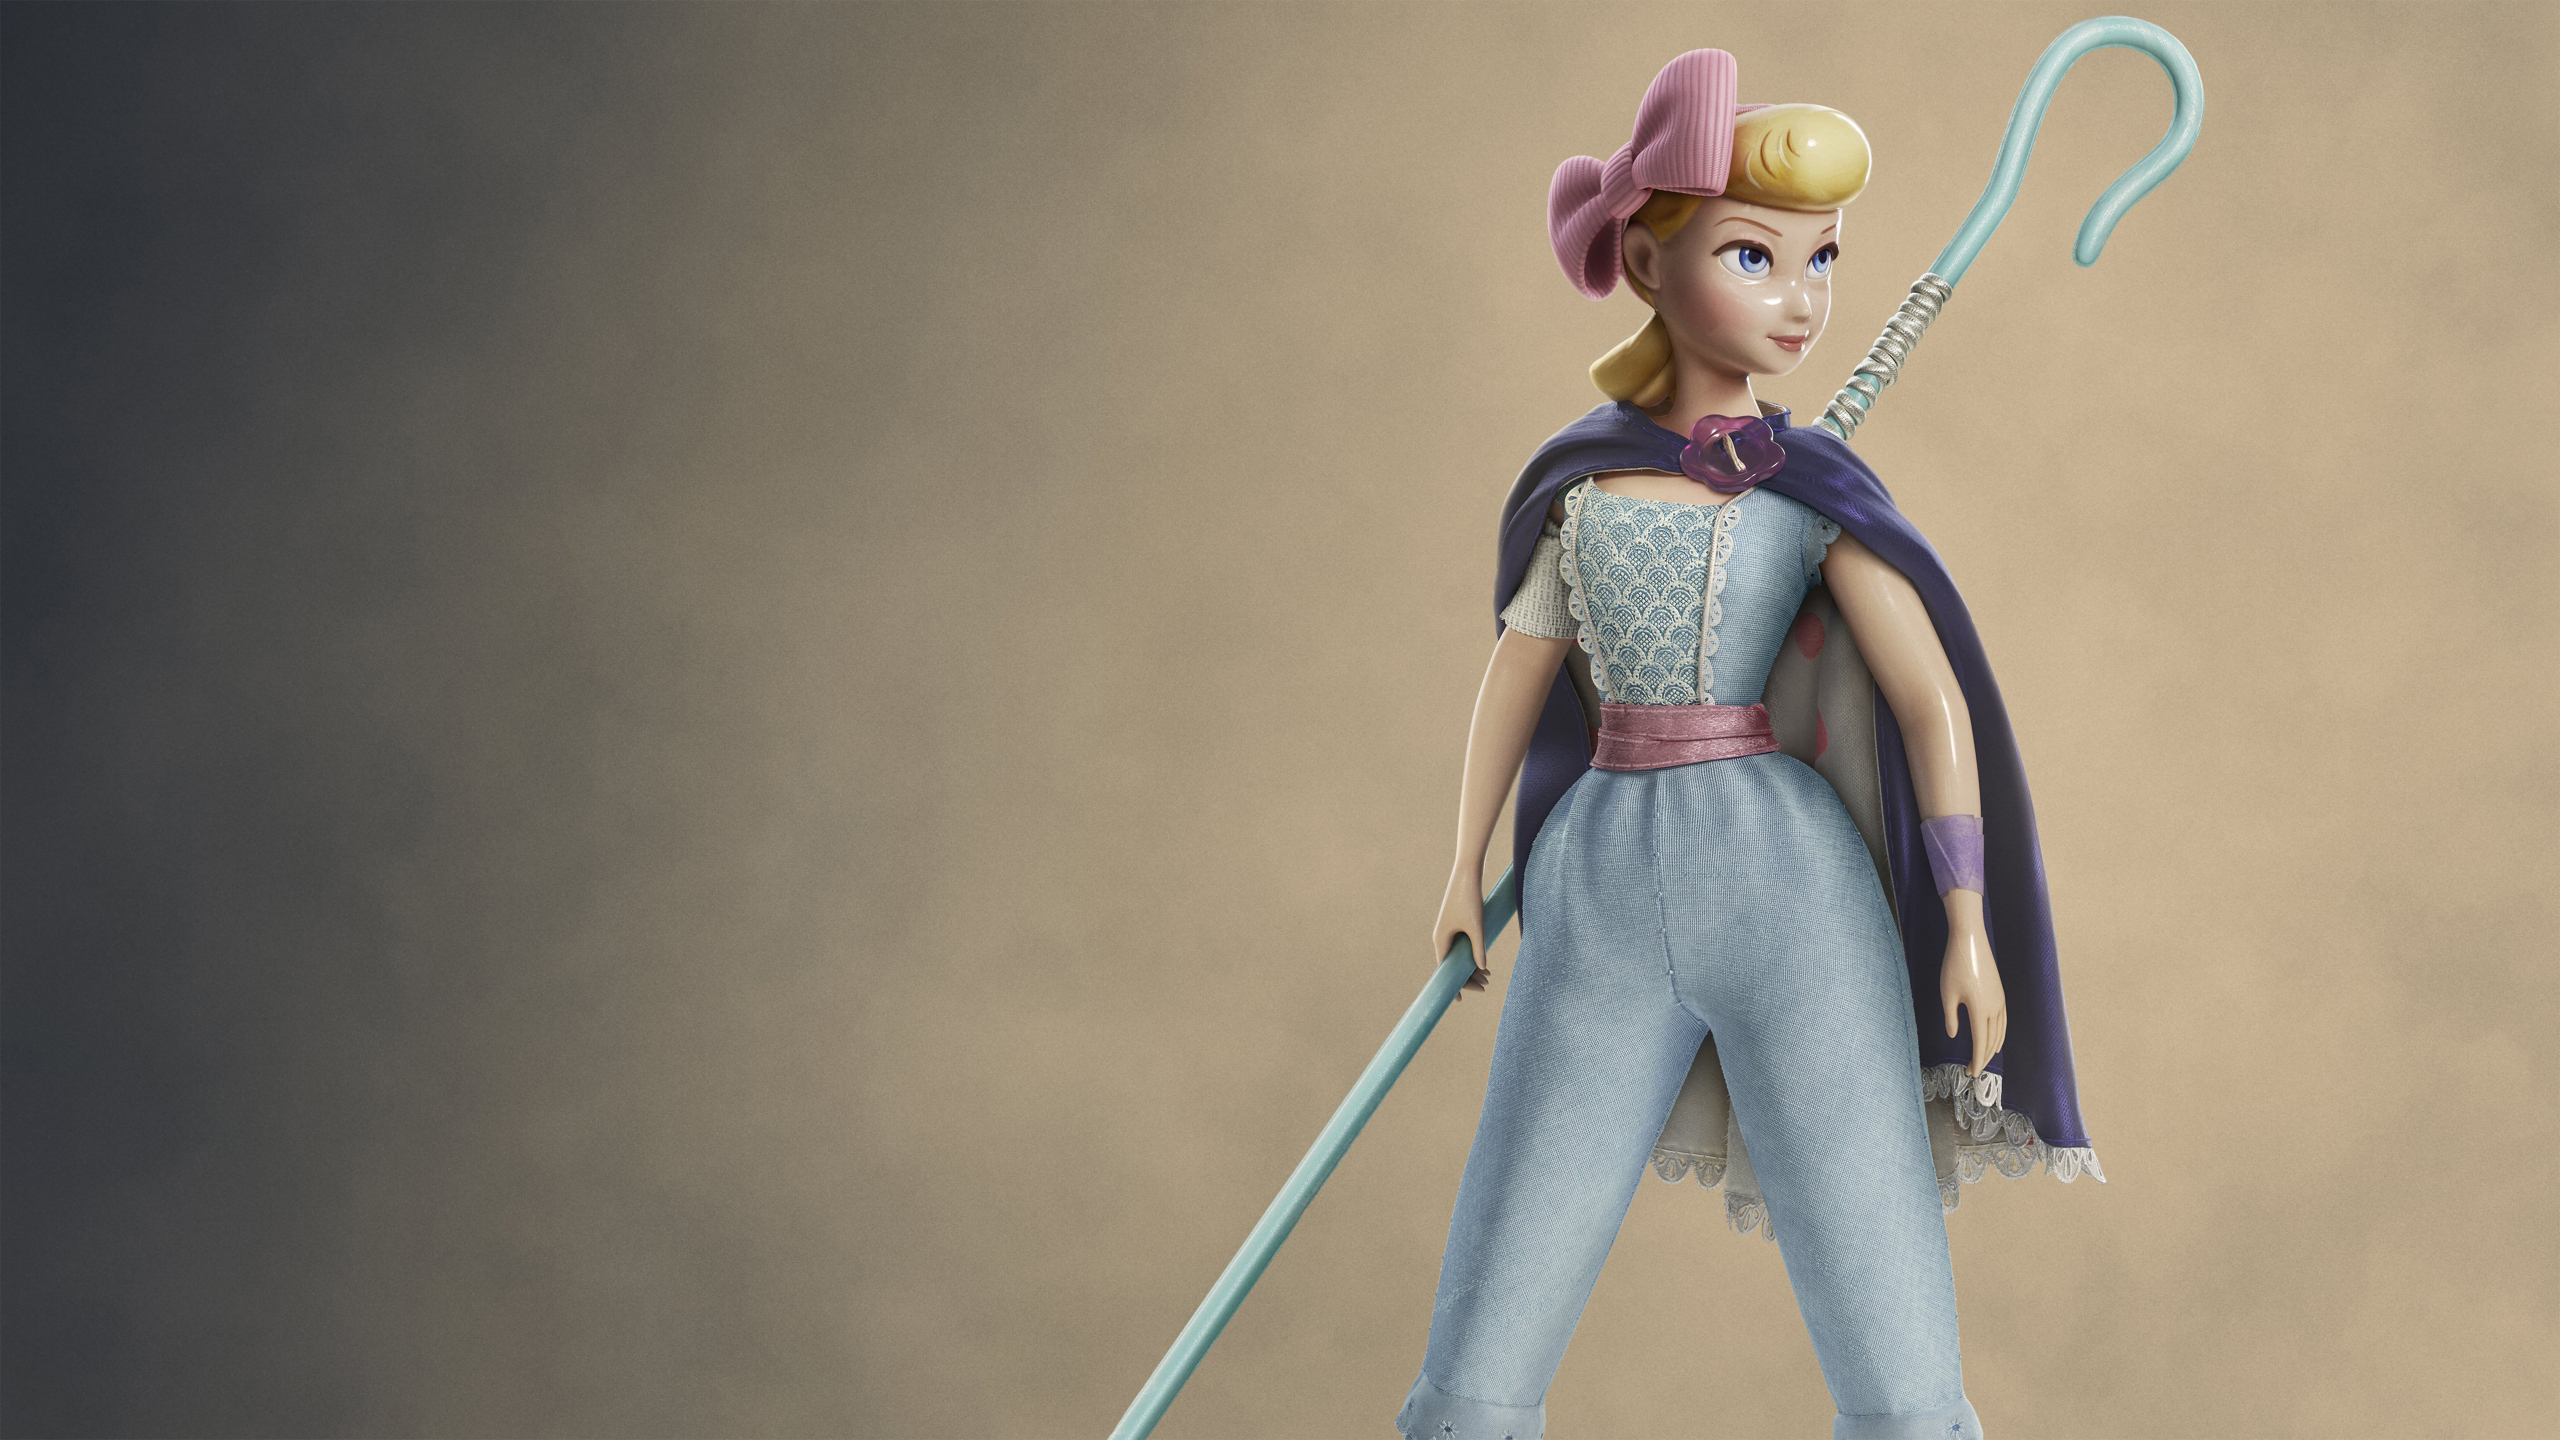 2560x1440 Bo Peep Toy Story 4 1440p Resolution Wallpaper Hd